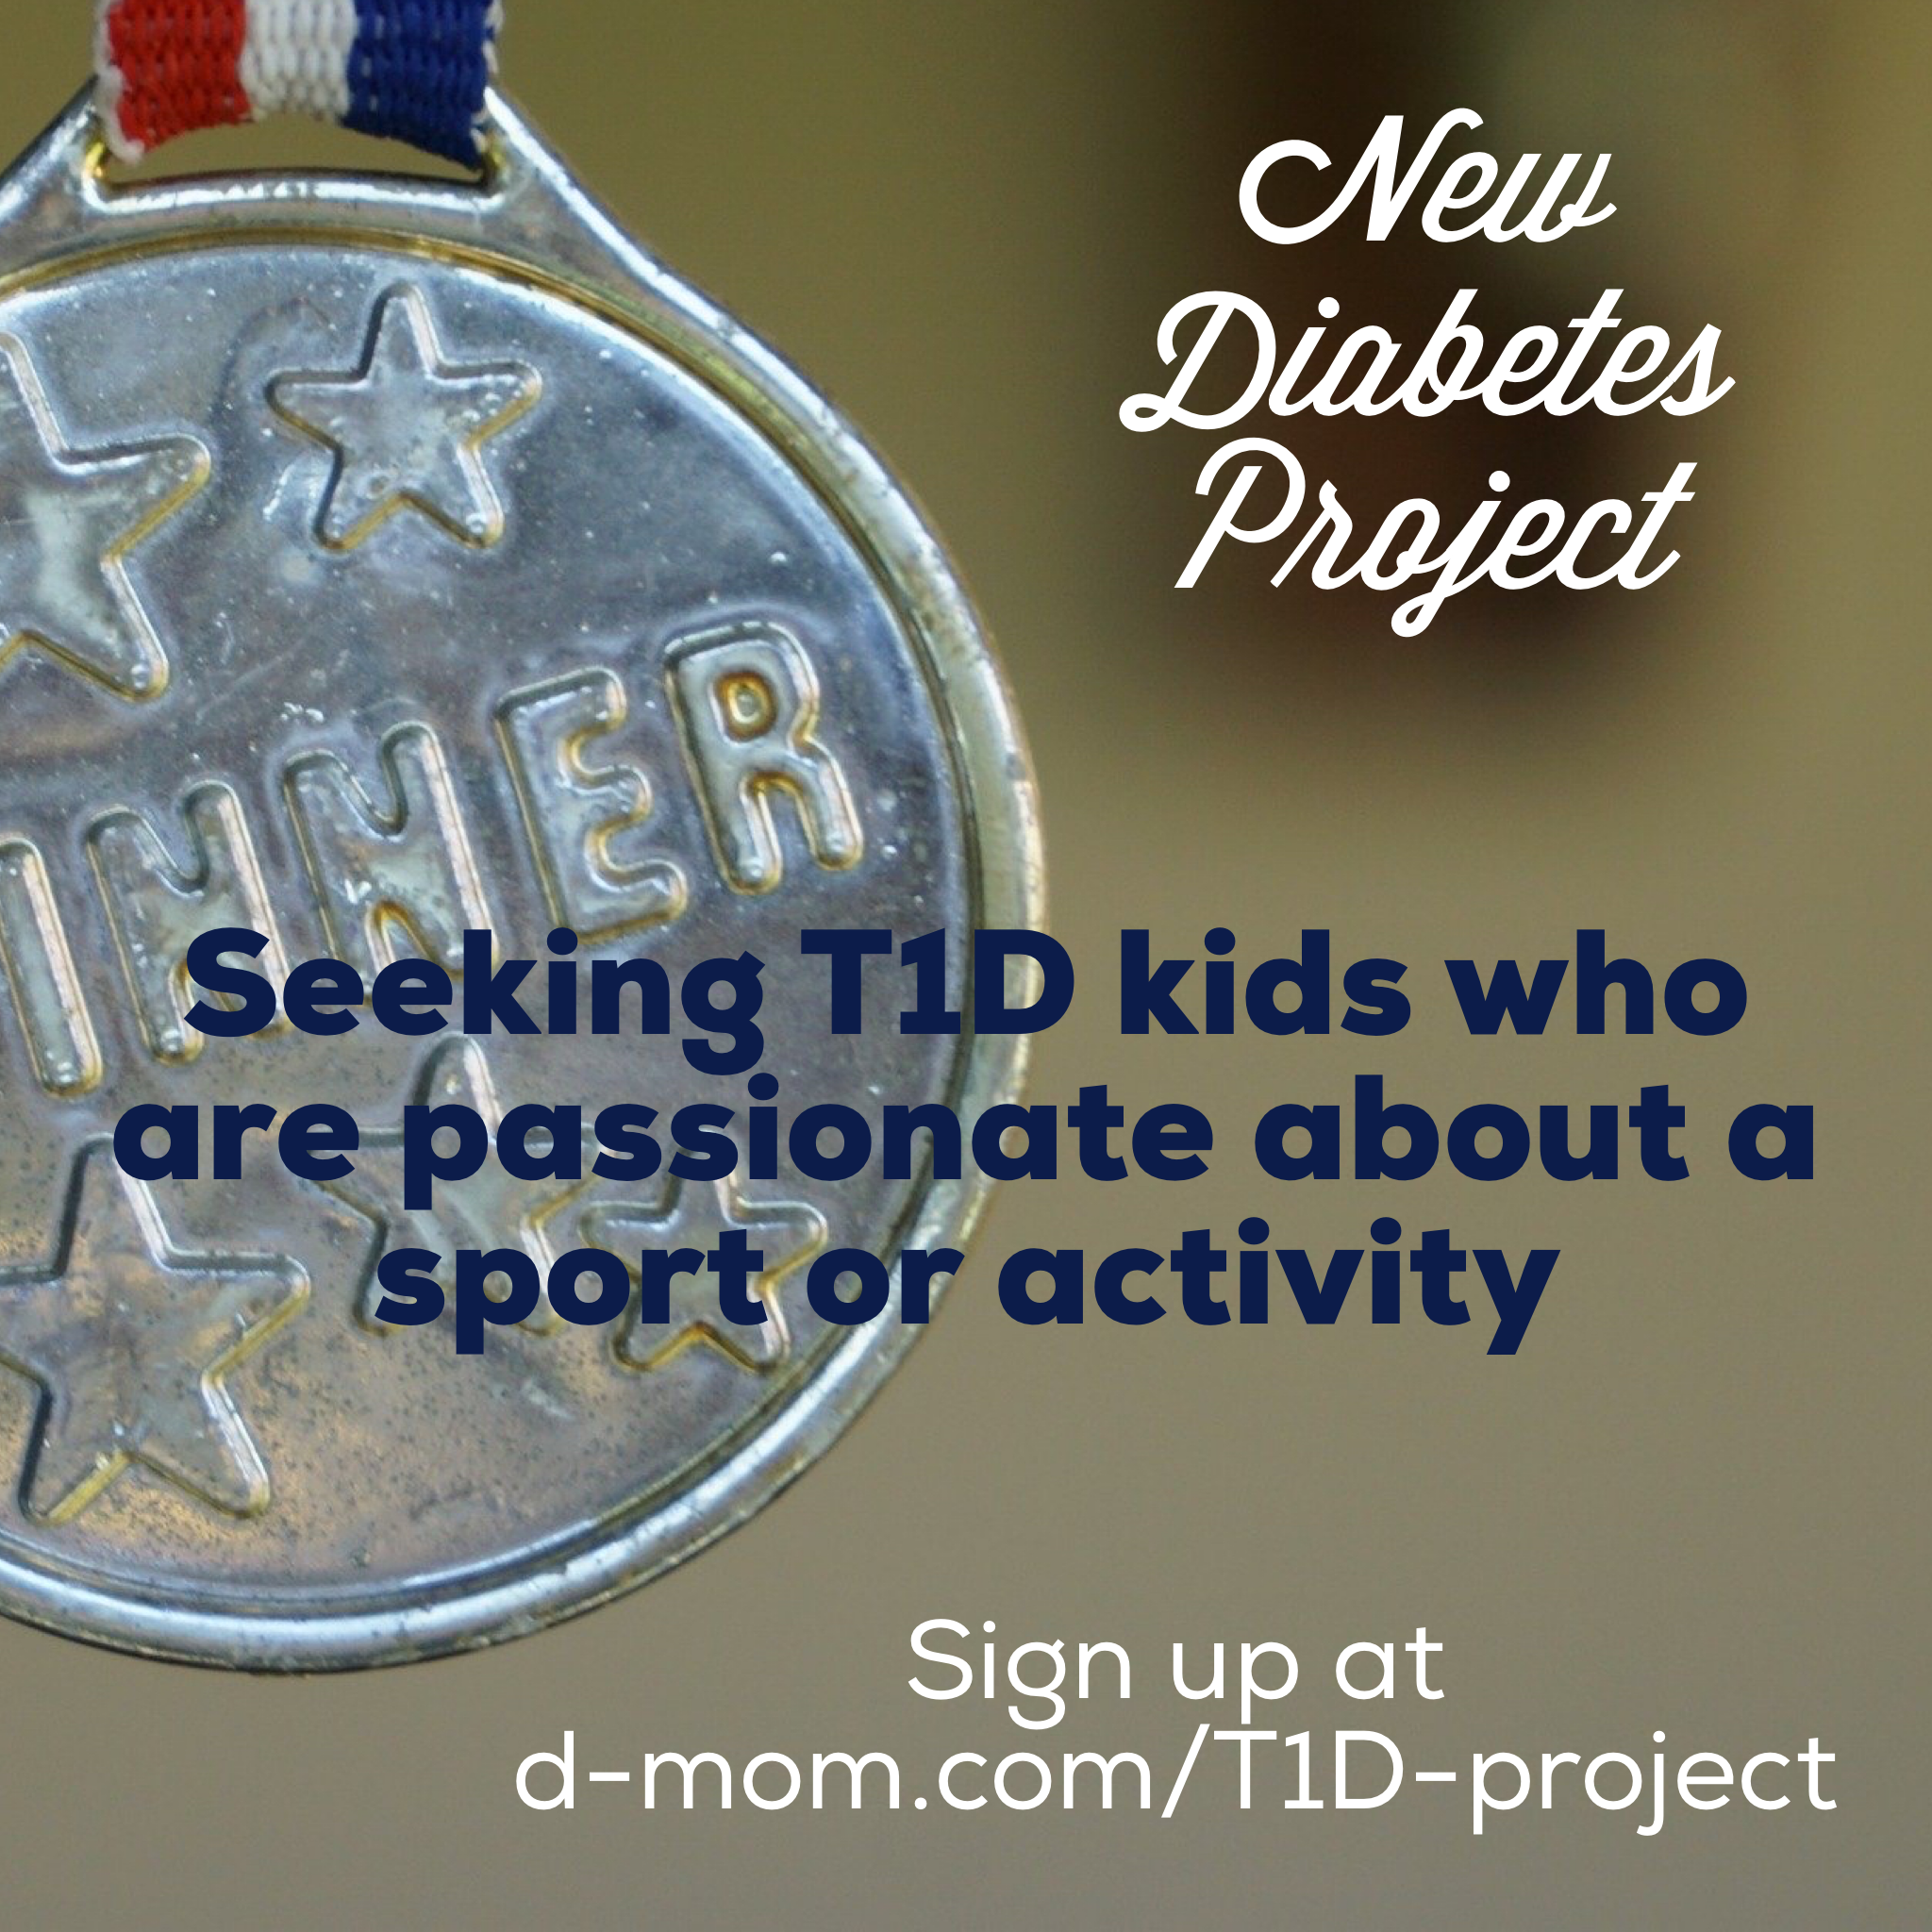 T1D Project